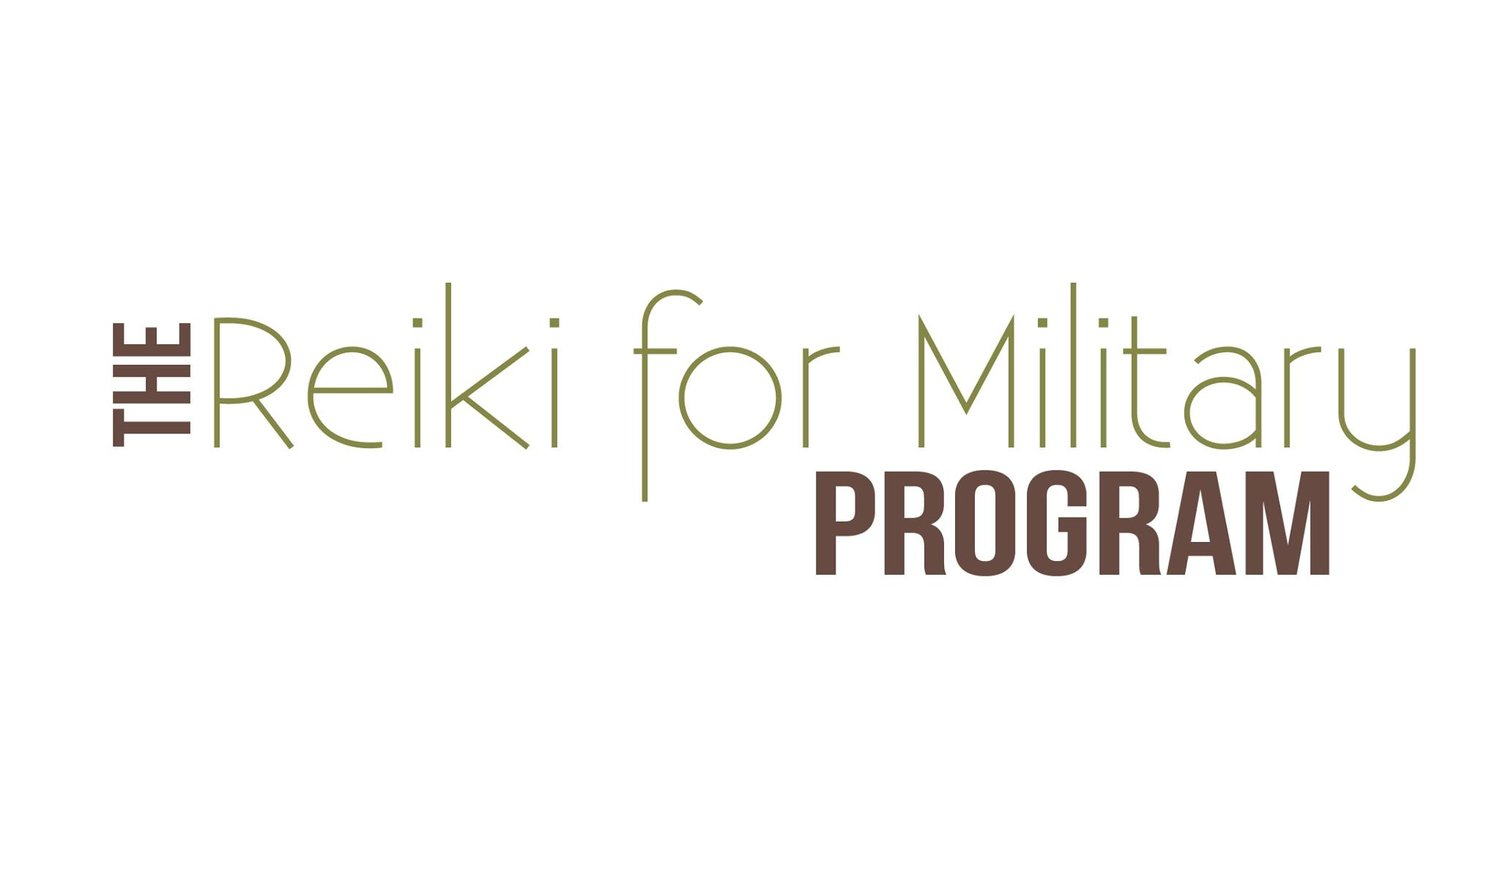 The Reiki for Military Program